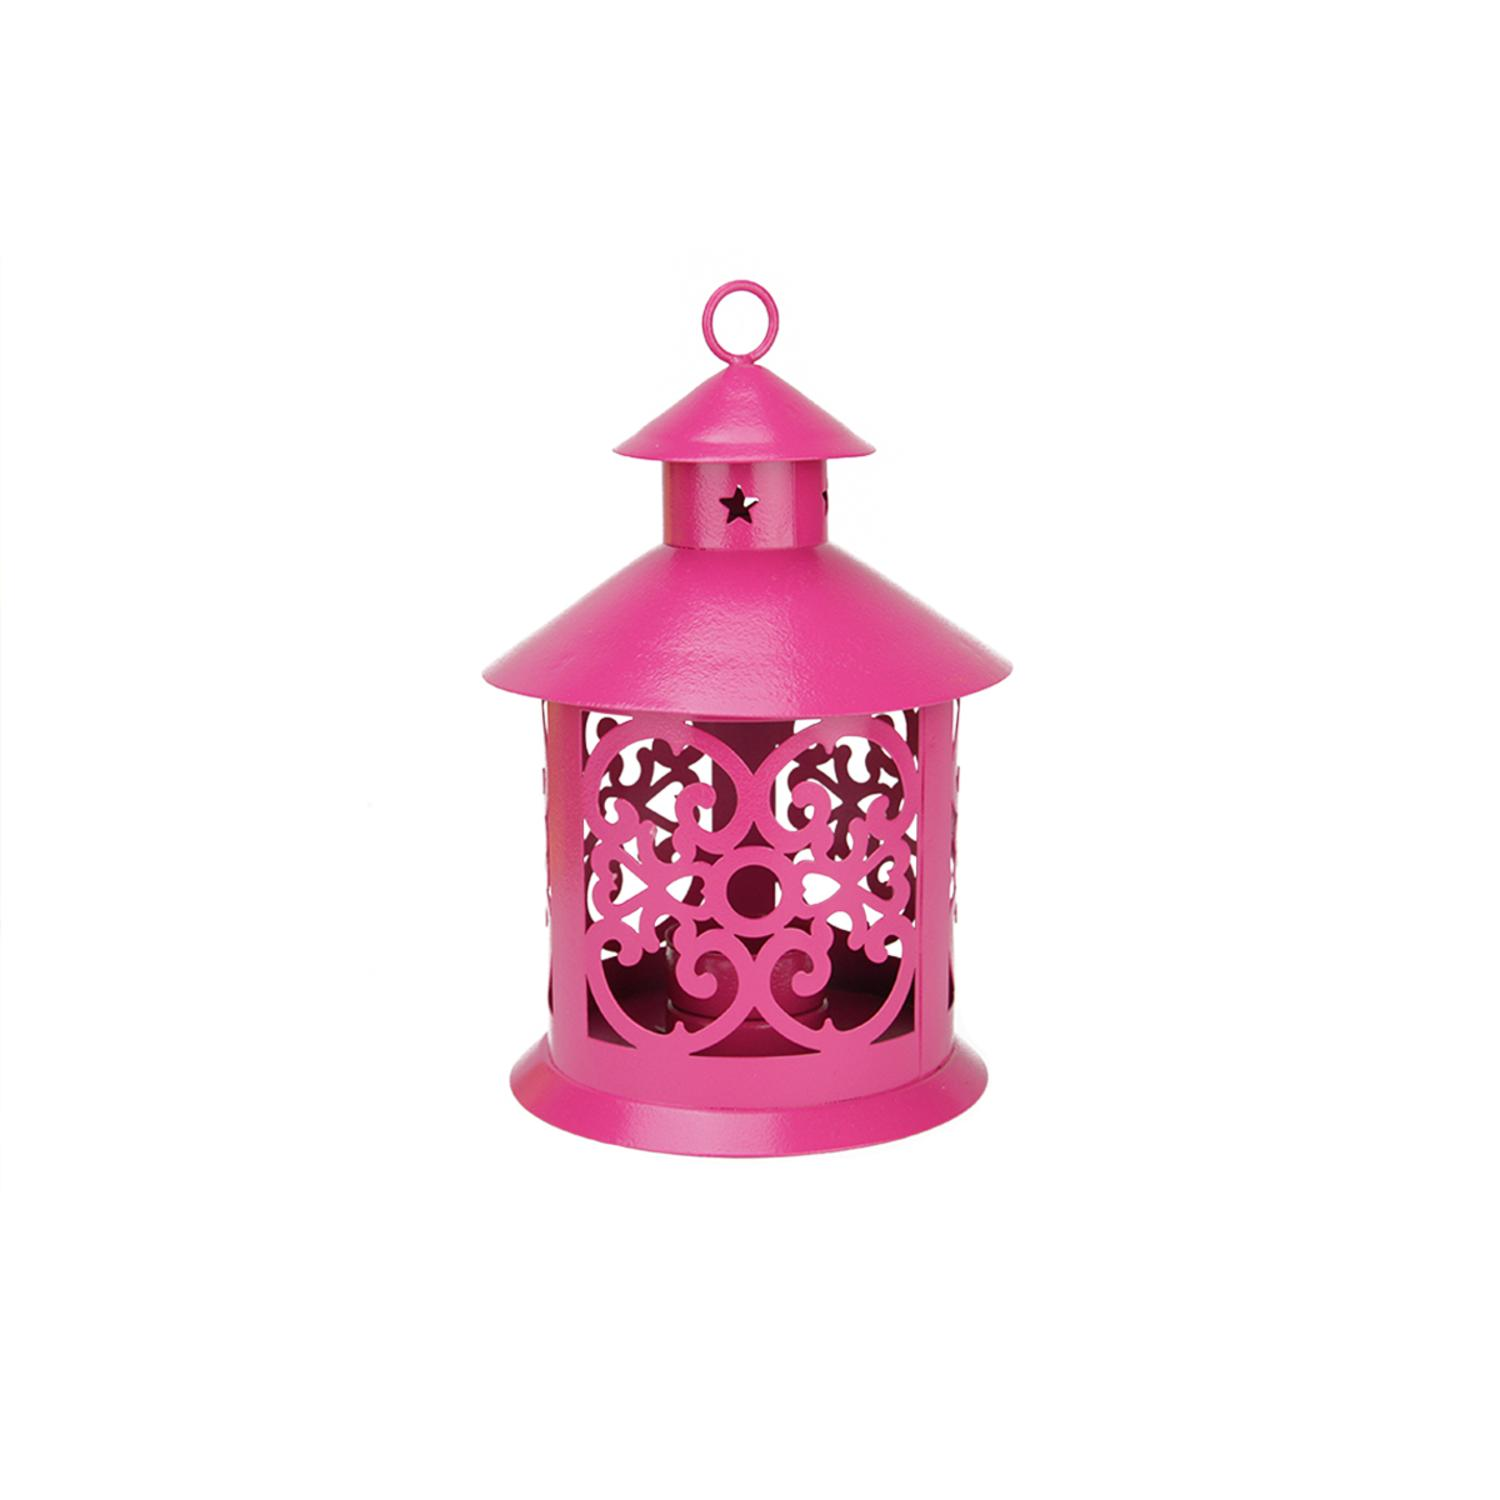 ''8'''' Shiny Pink Votive or TEALIGHT Candle Holder Lantern with Star and Scroll Cutouts''